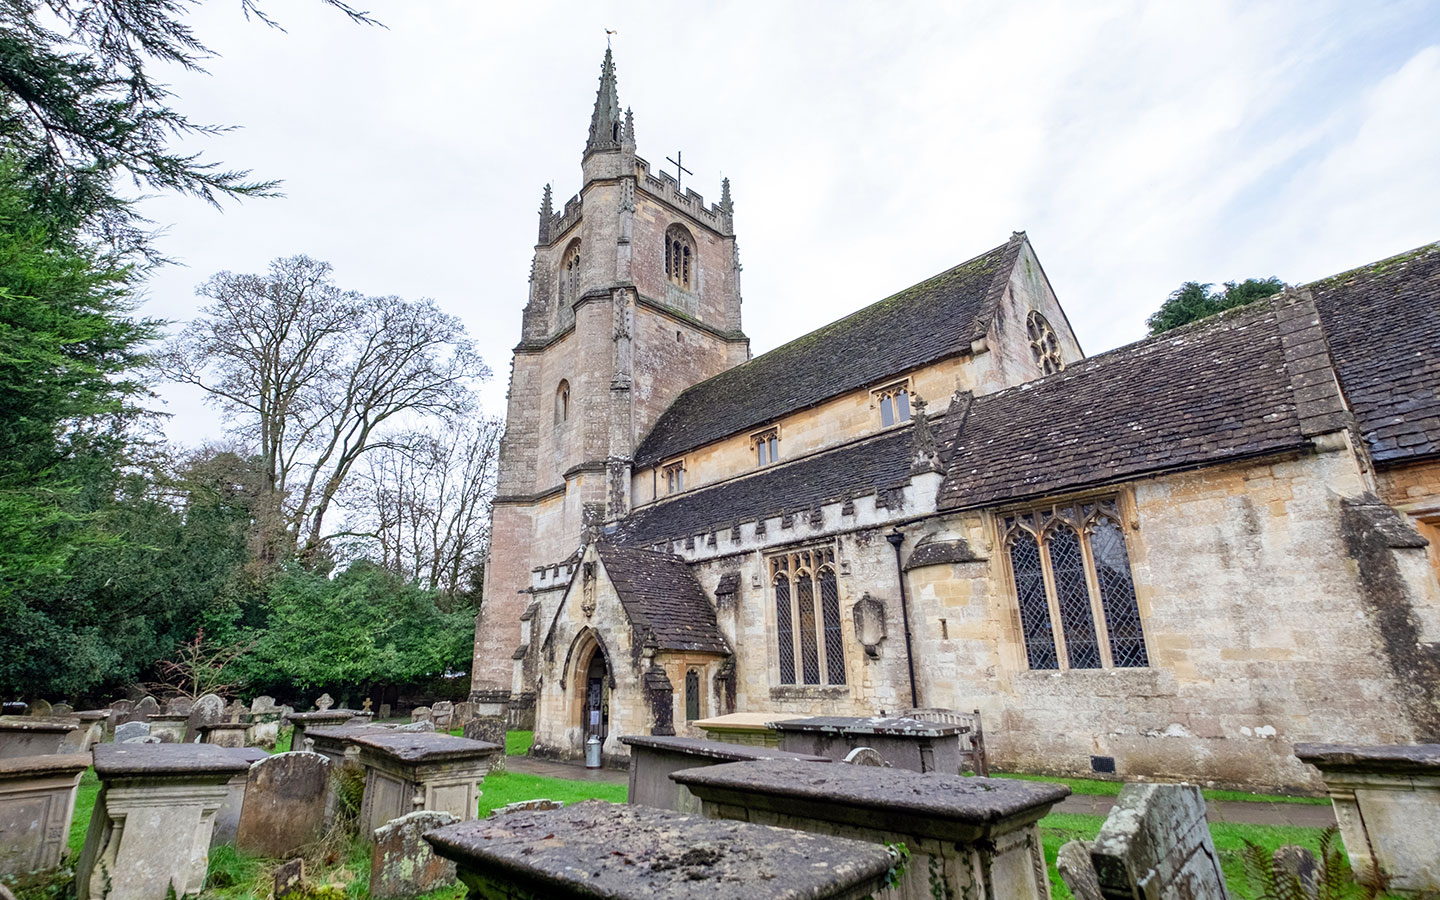 St Andrew's Church in Castle Combe